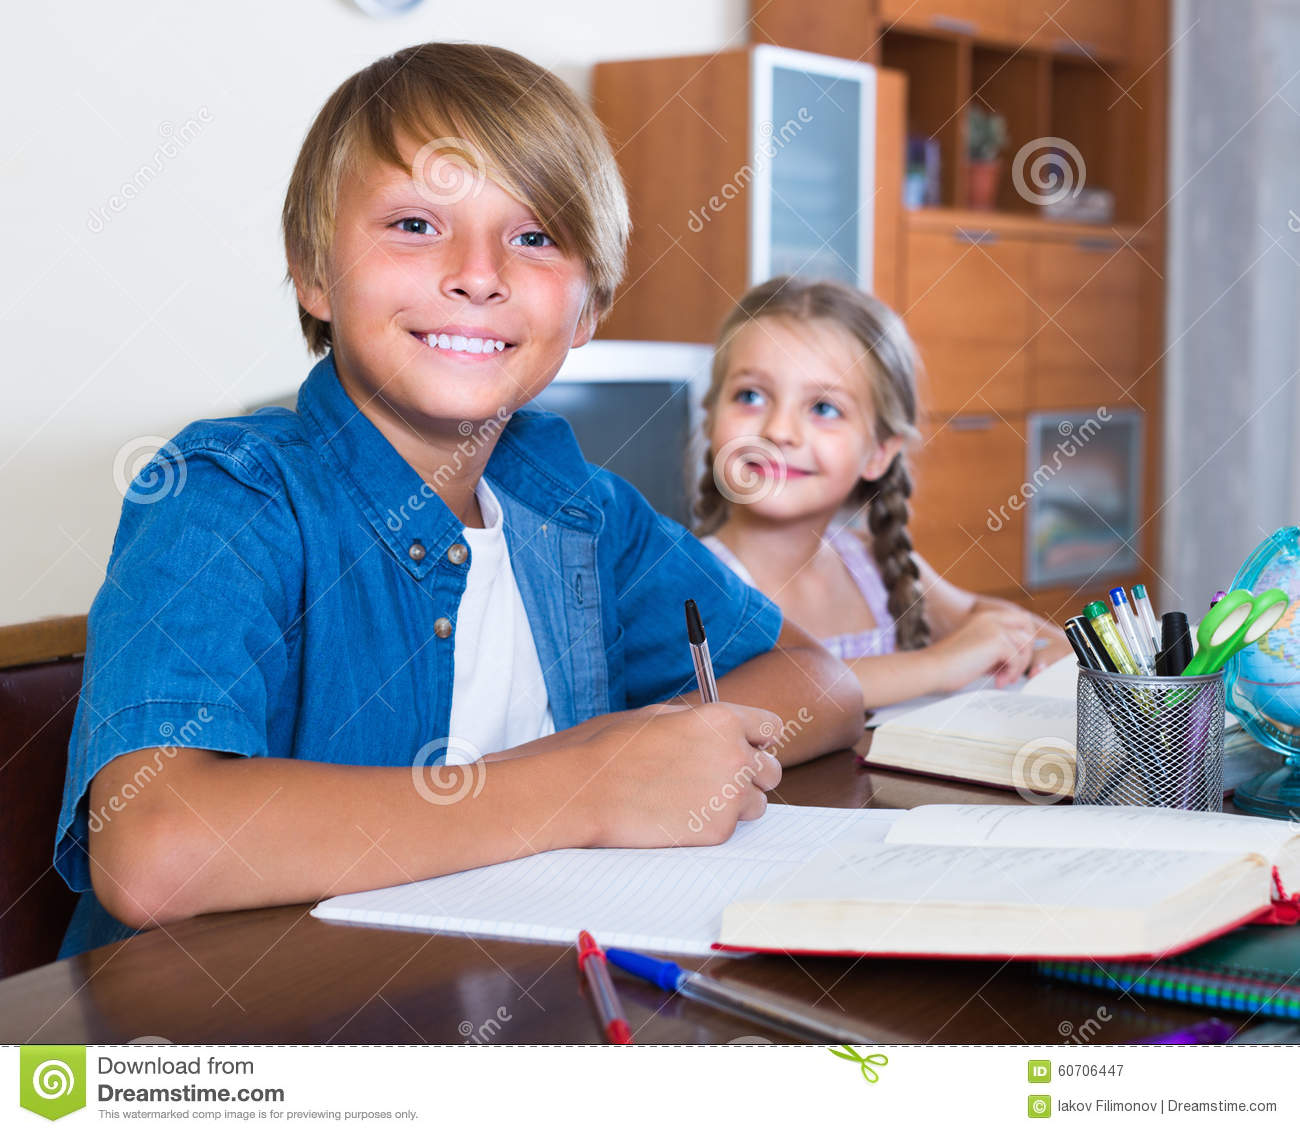 photo of child doing homework